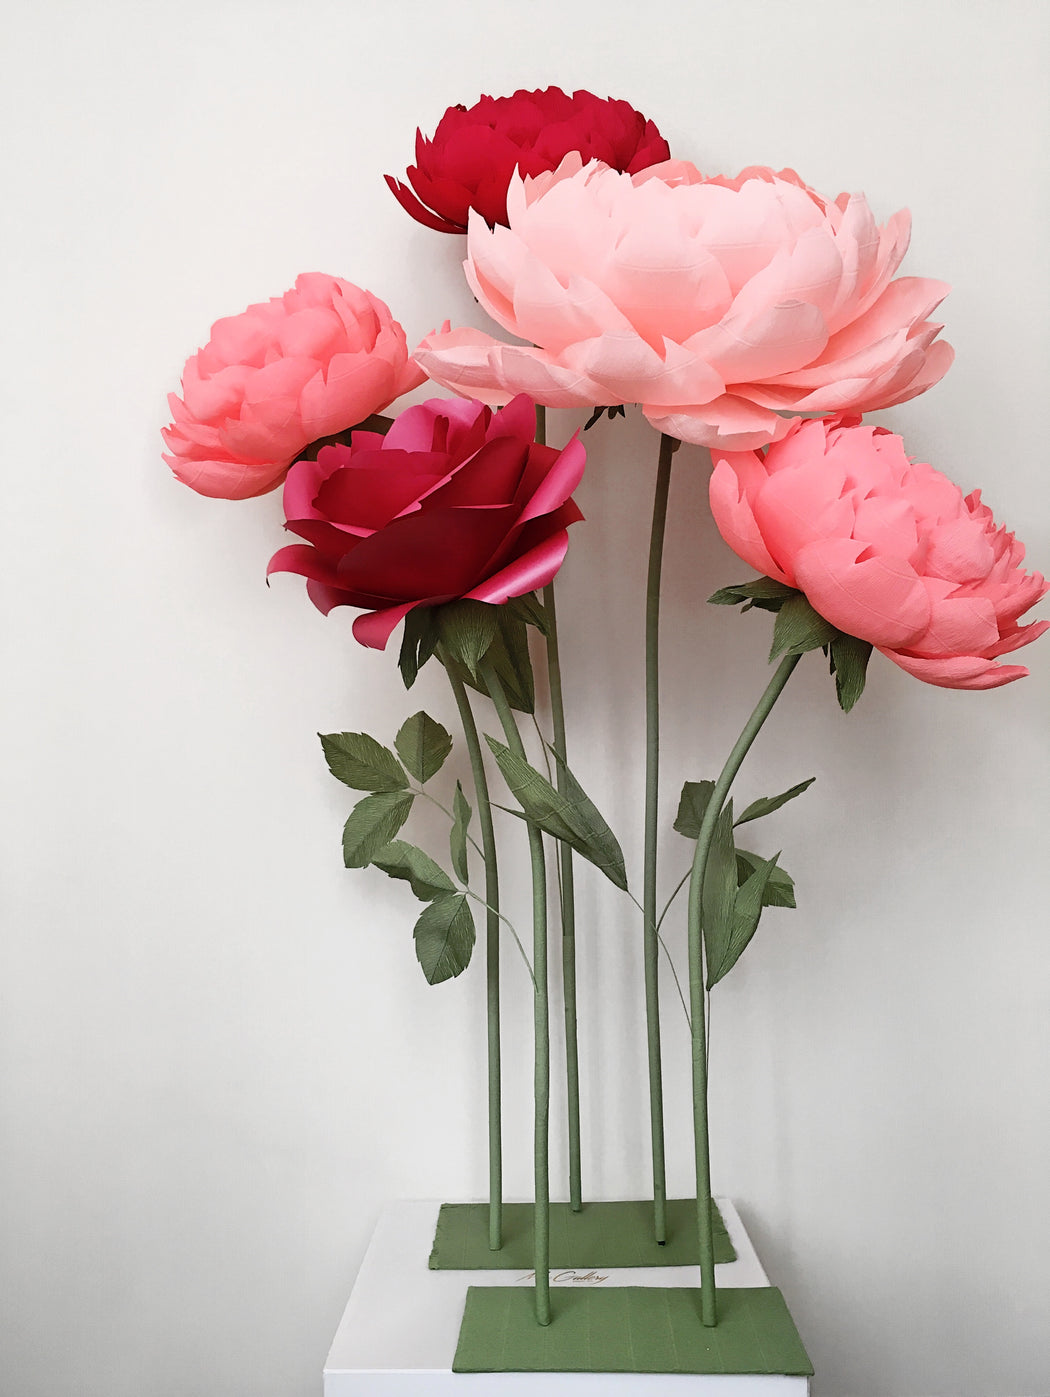 Oversized Paper Roses and Peonies- Standing Paper Flowers - Mio Gallery